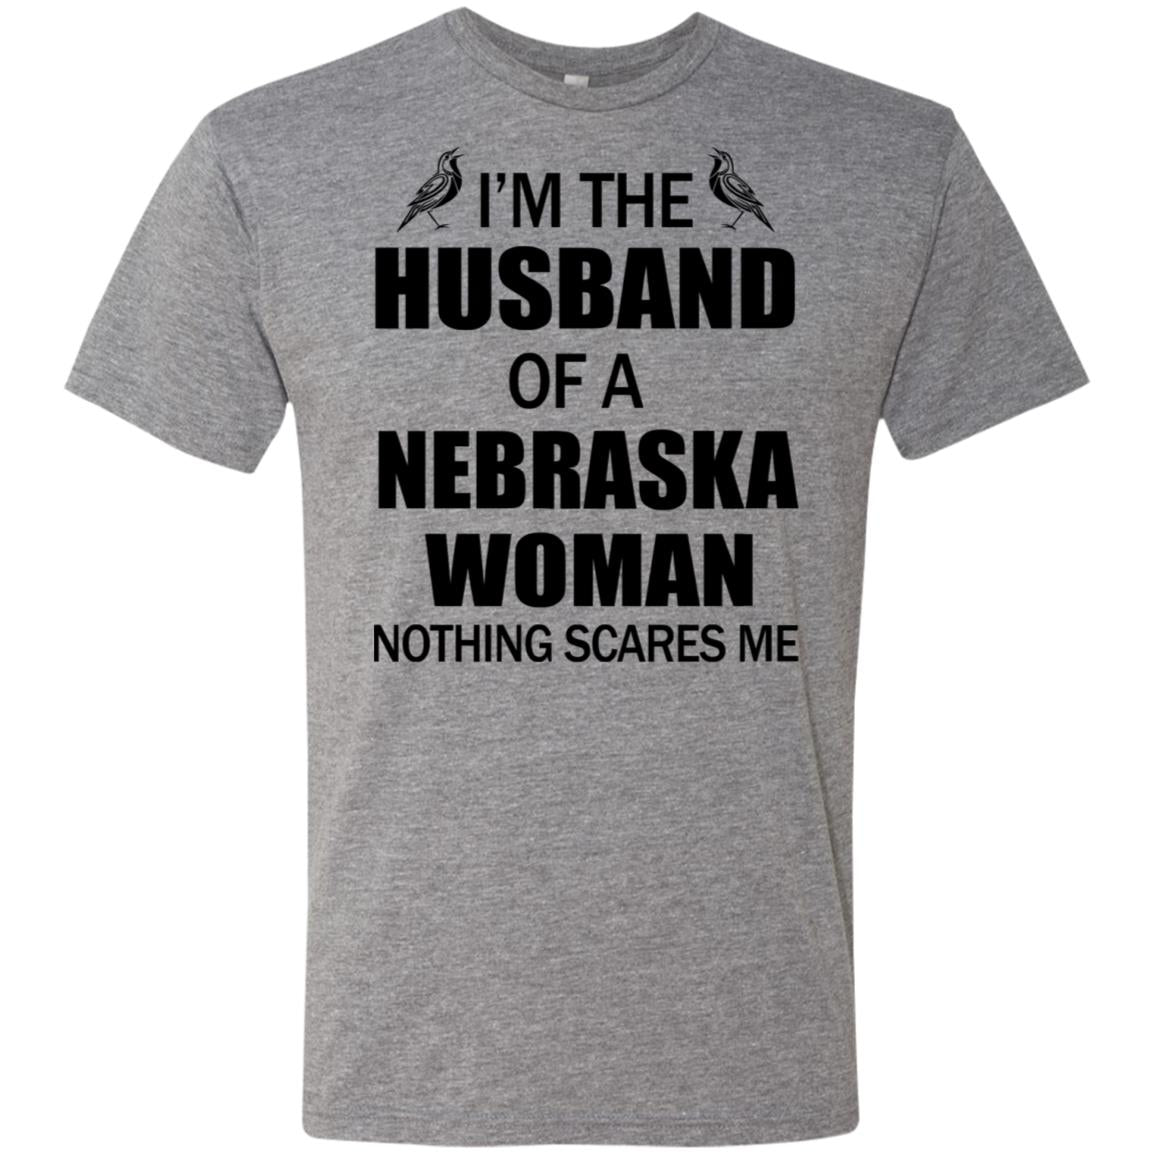 I'M THE HUSBAND OF A NEBRASKA WOMAN NOTHING SCARES ME